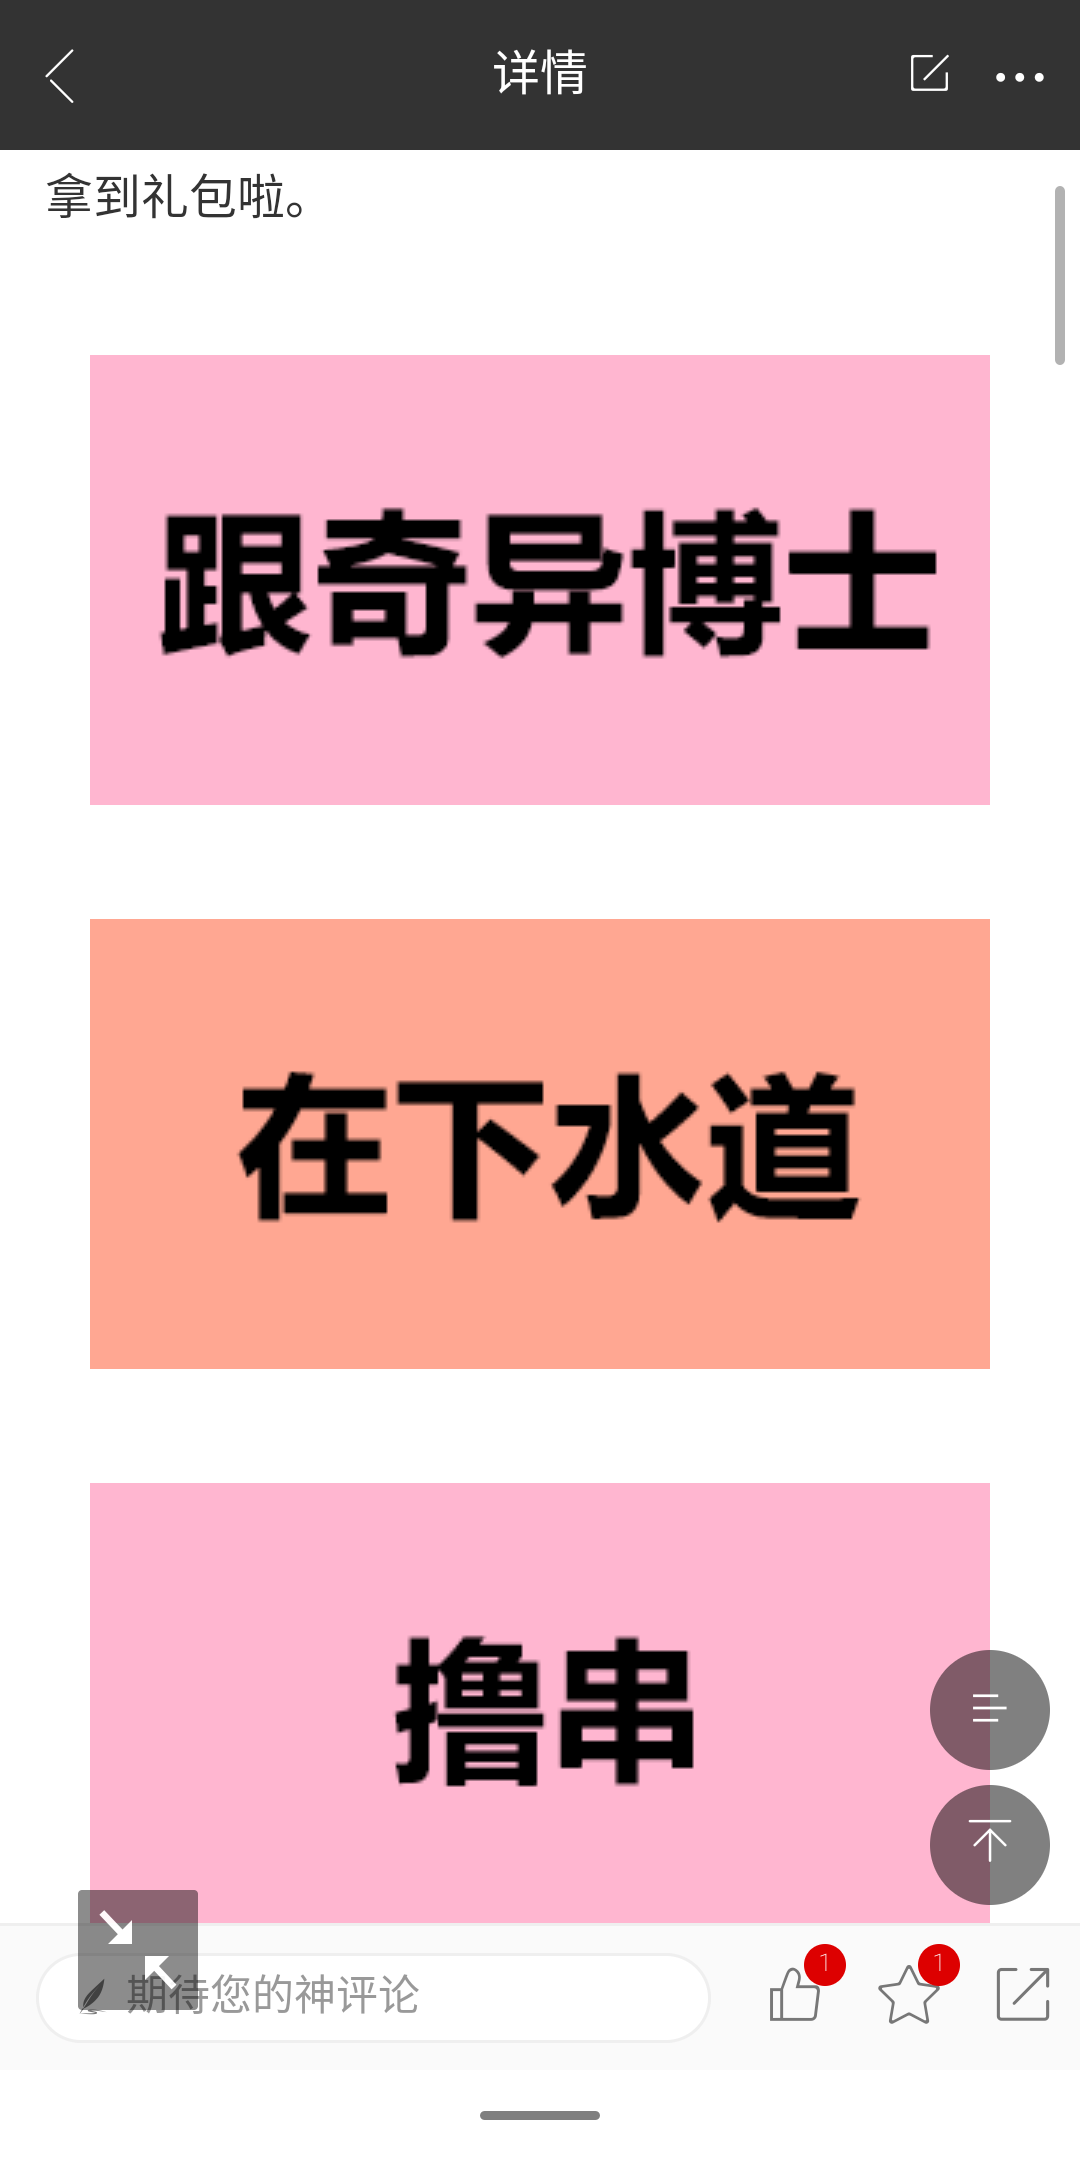 S90725-17124405.png